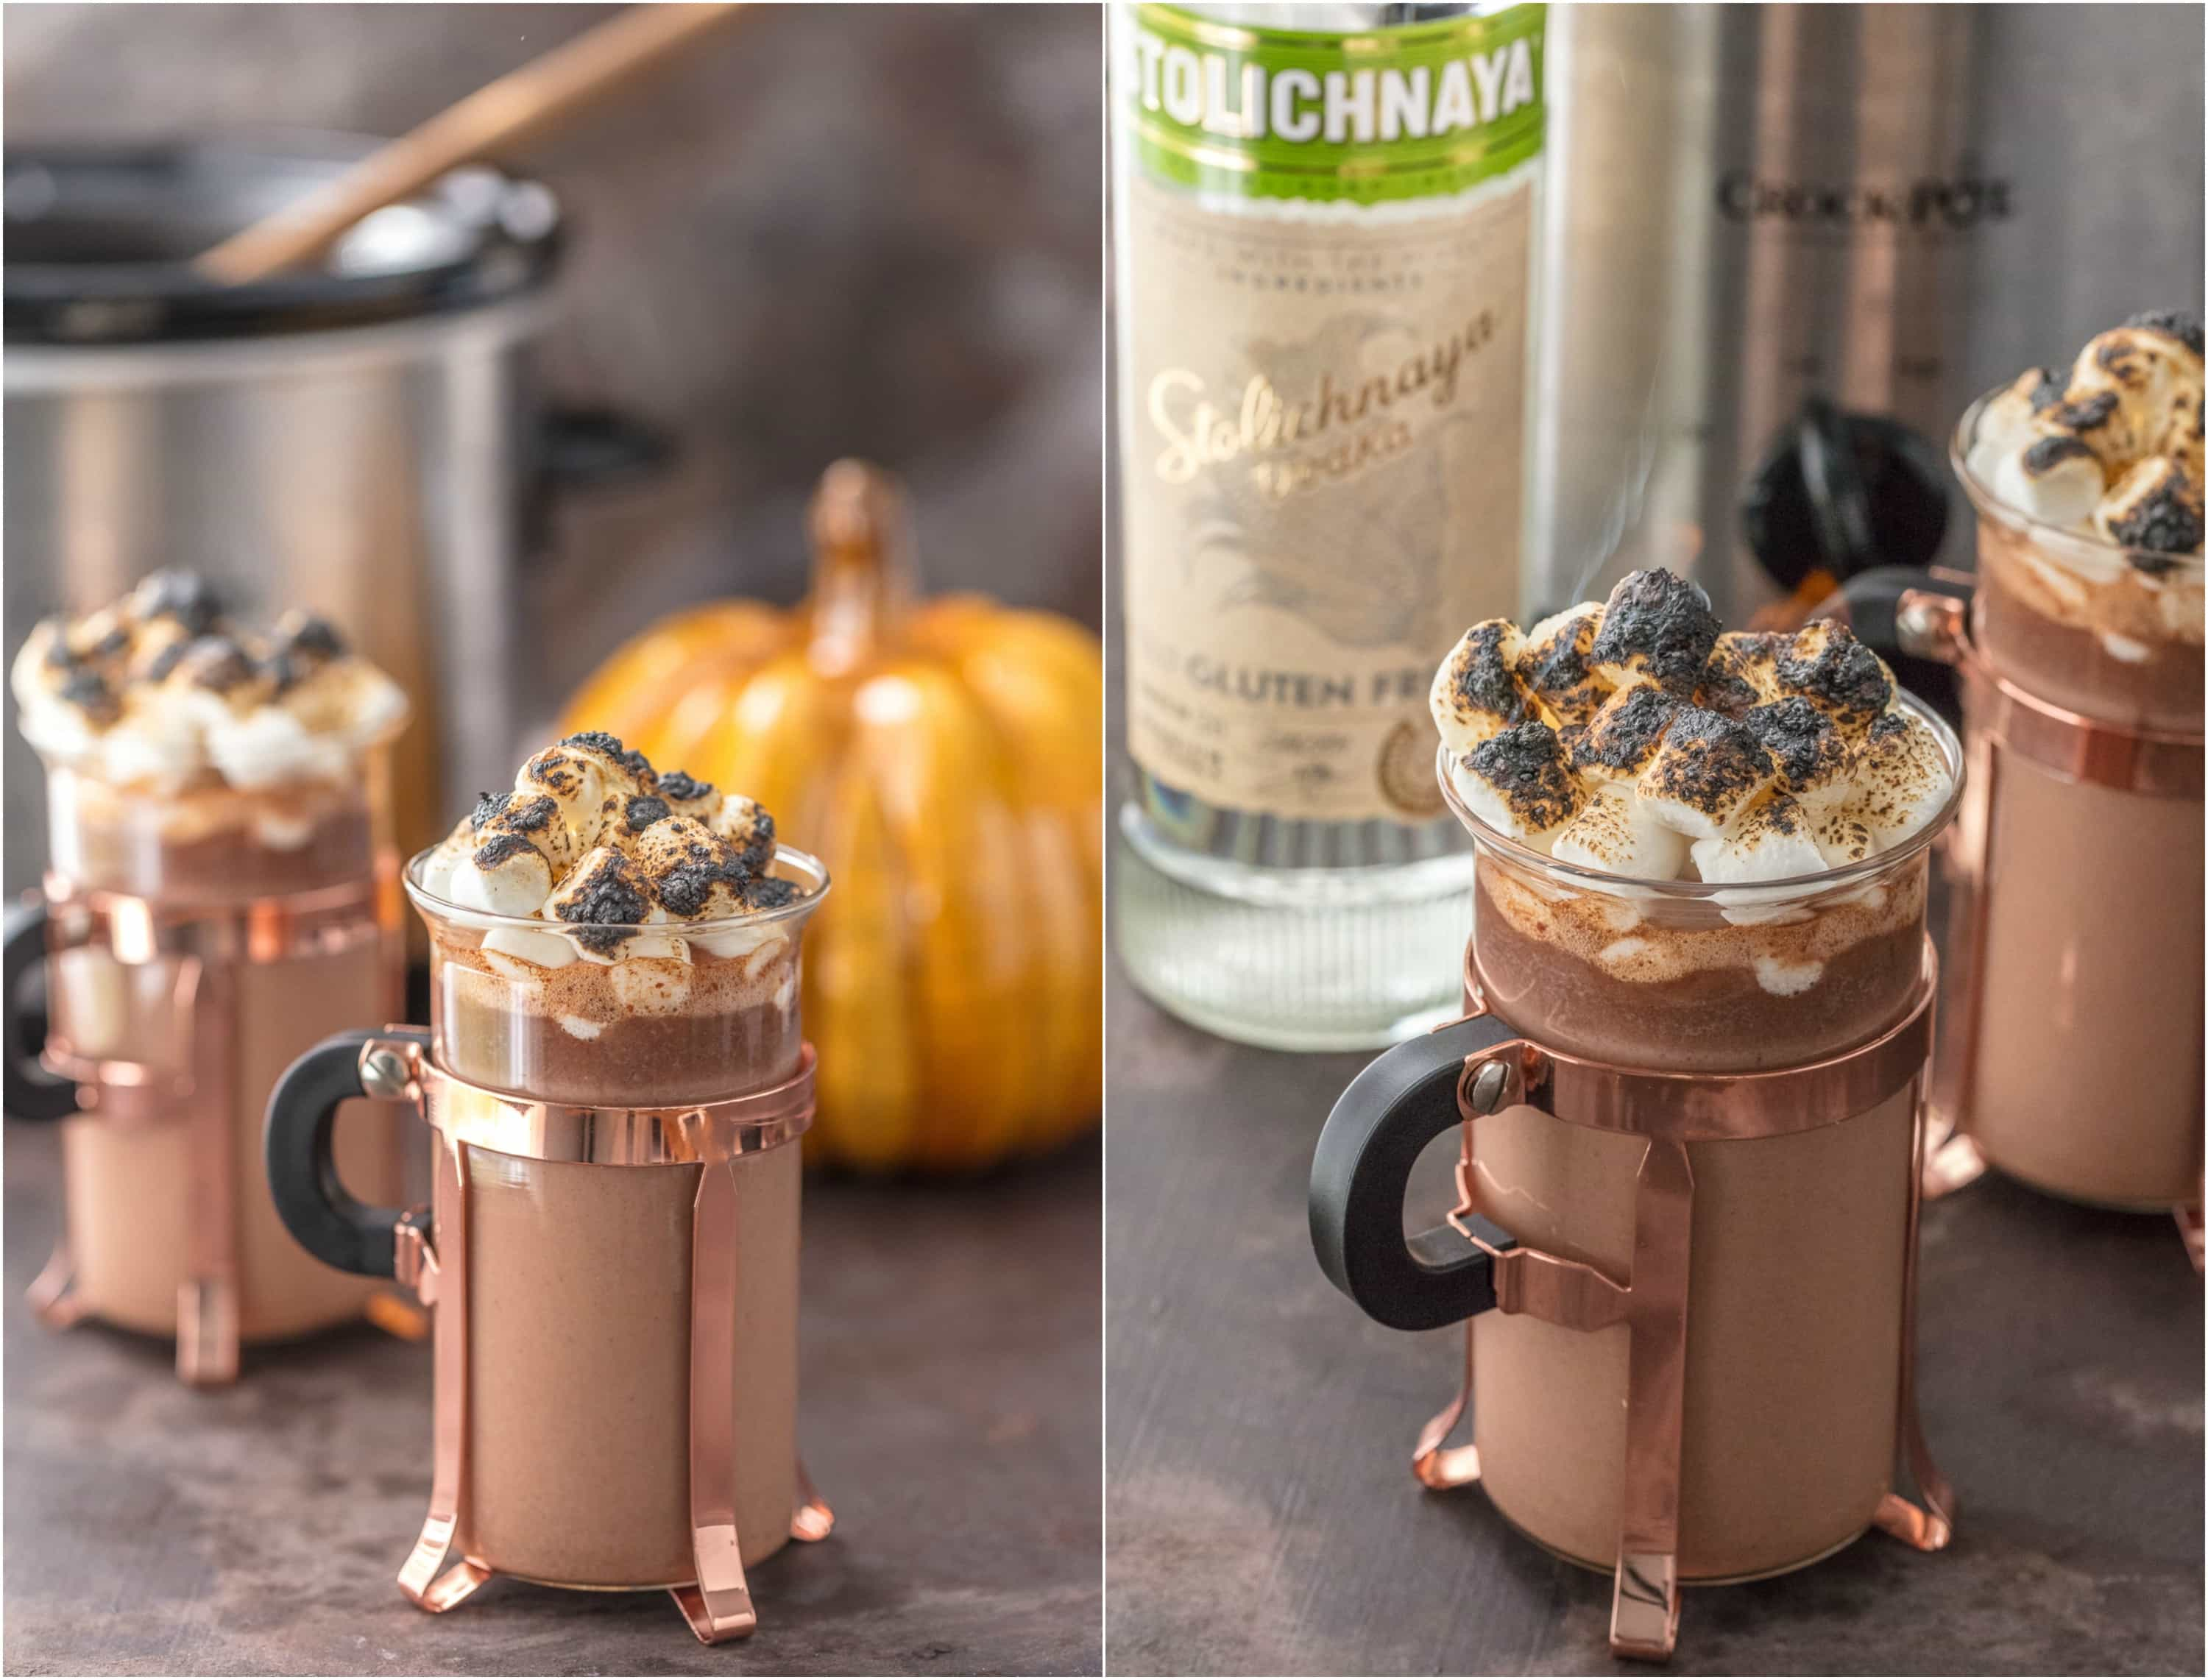 Making hot chocolate for a crowd - Made In A Spiked Slow Cooker Pumpkin Pie Hot Chocolate Is The Ultimate Thanksgiving Cocktail Made In A